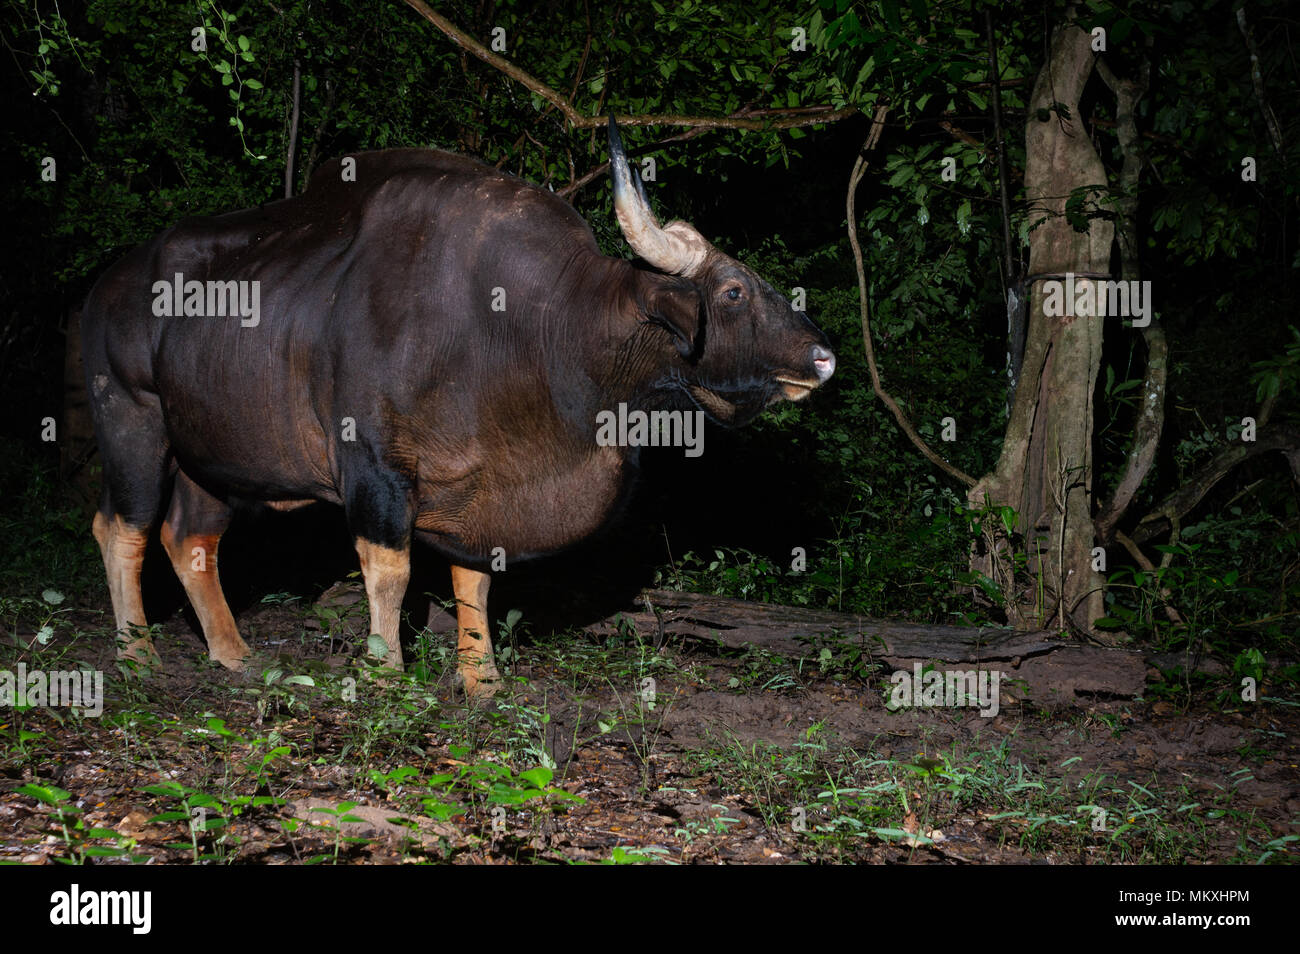 The gaur (Bos gaurus), also called Indian bison, is the largest extant bovine, native to the Indian Subcontinent and Southeast Asia. - Stock Image